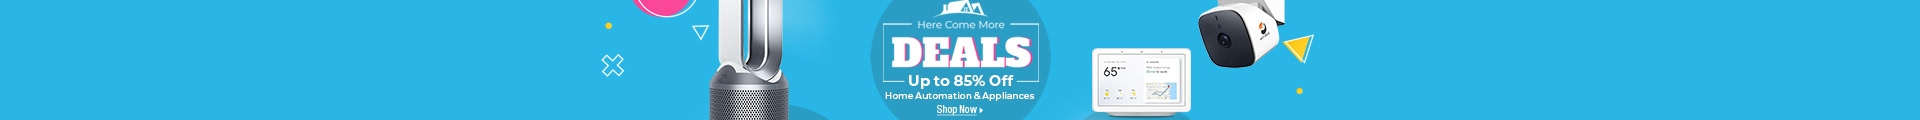 Up to 85% home automation & appliances